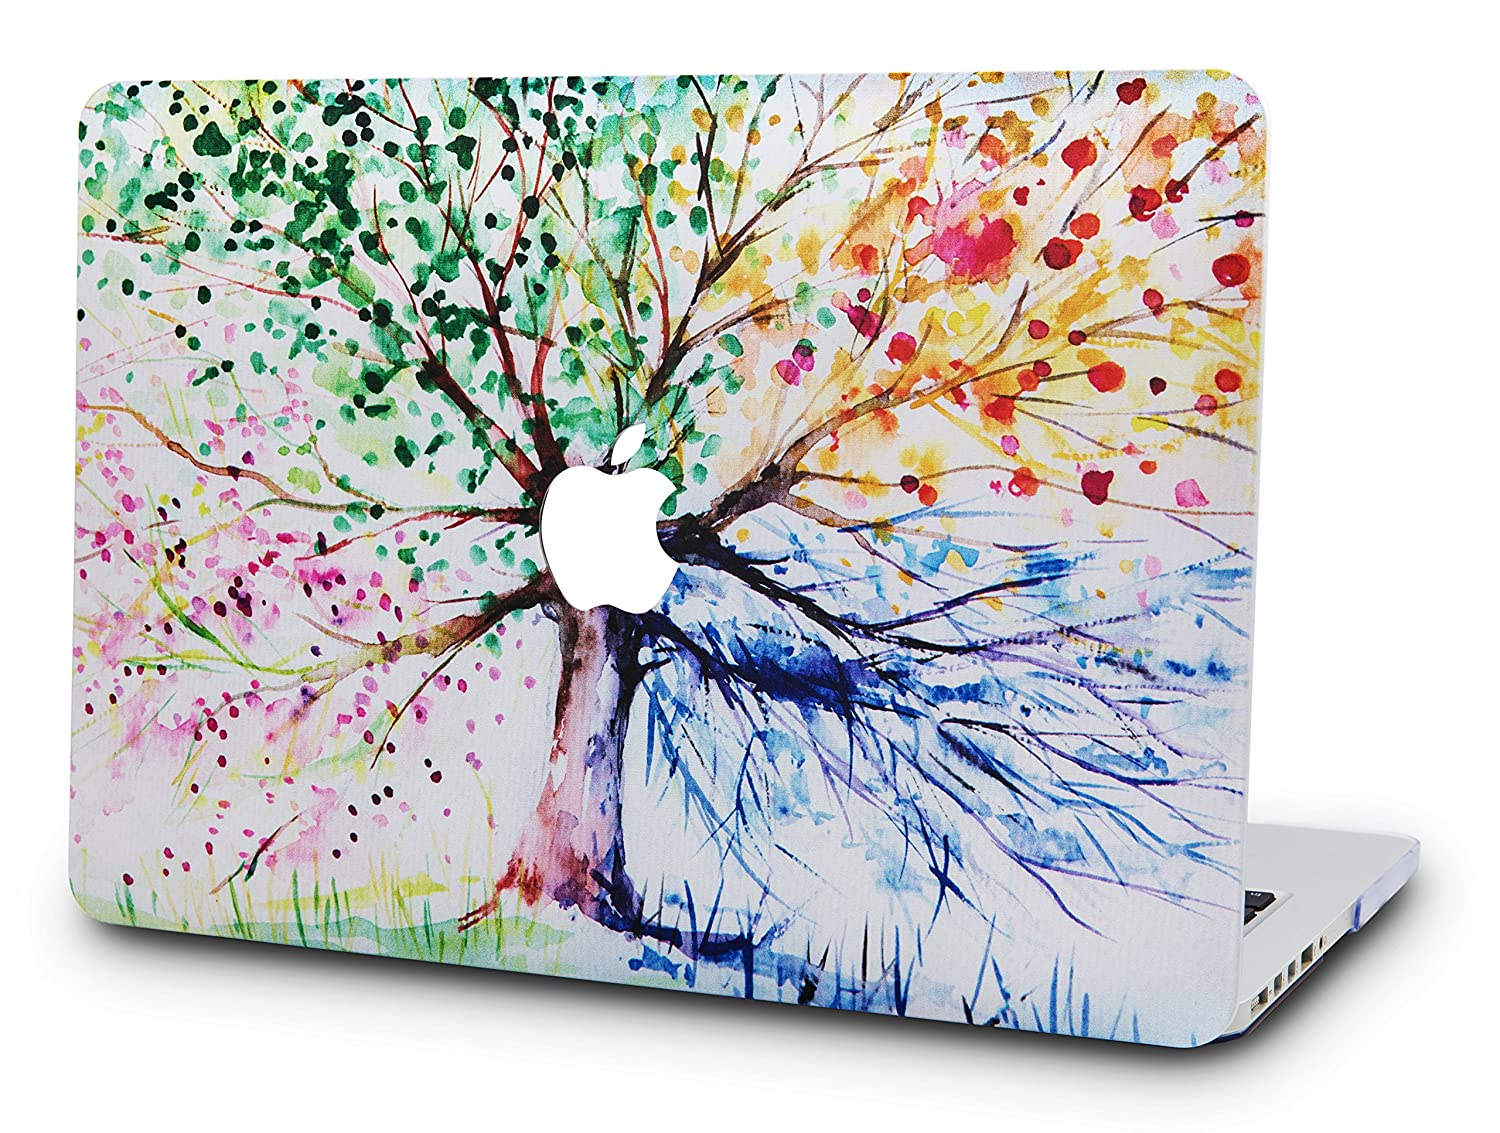 KECC Laptop Case for MacBook Air 13 Inch Plastic Case Hard Shell Cover A1466/A1369 (Four Season Tree)